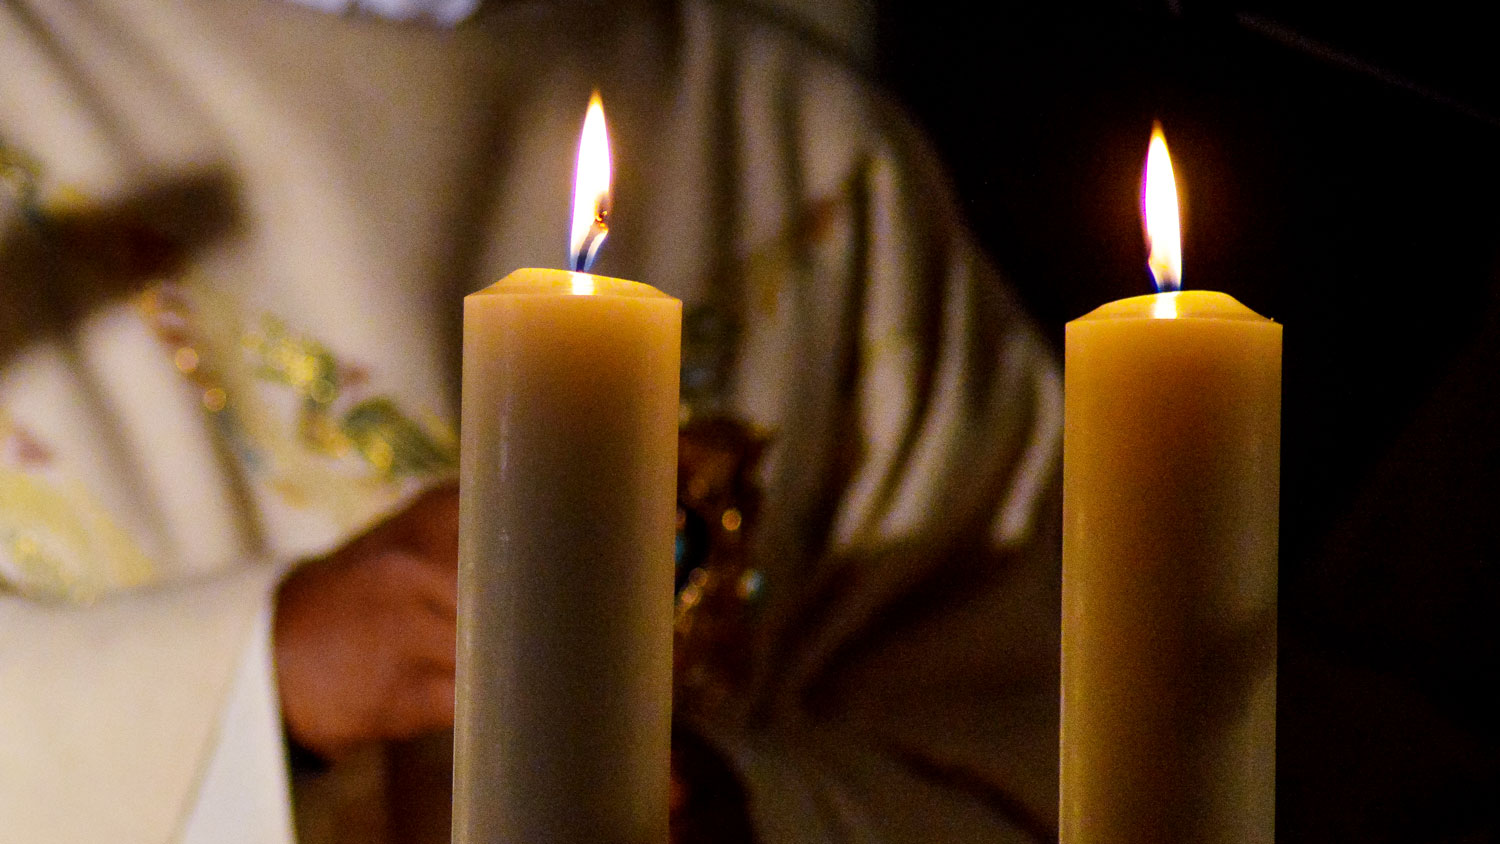 church candles 2qXiQkgEUPE unsplash